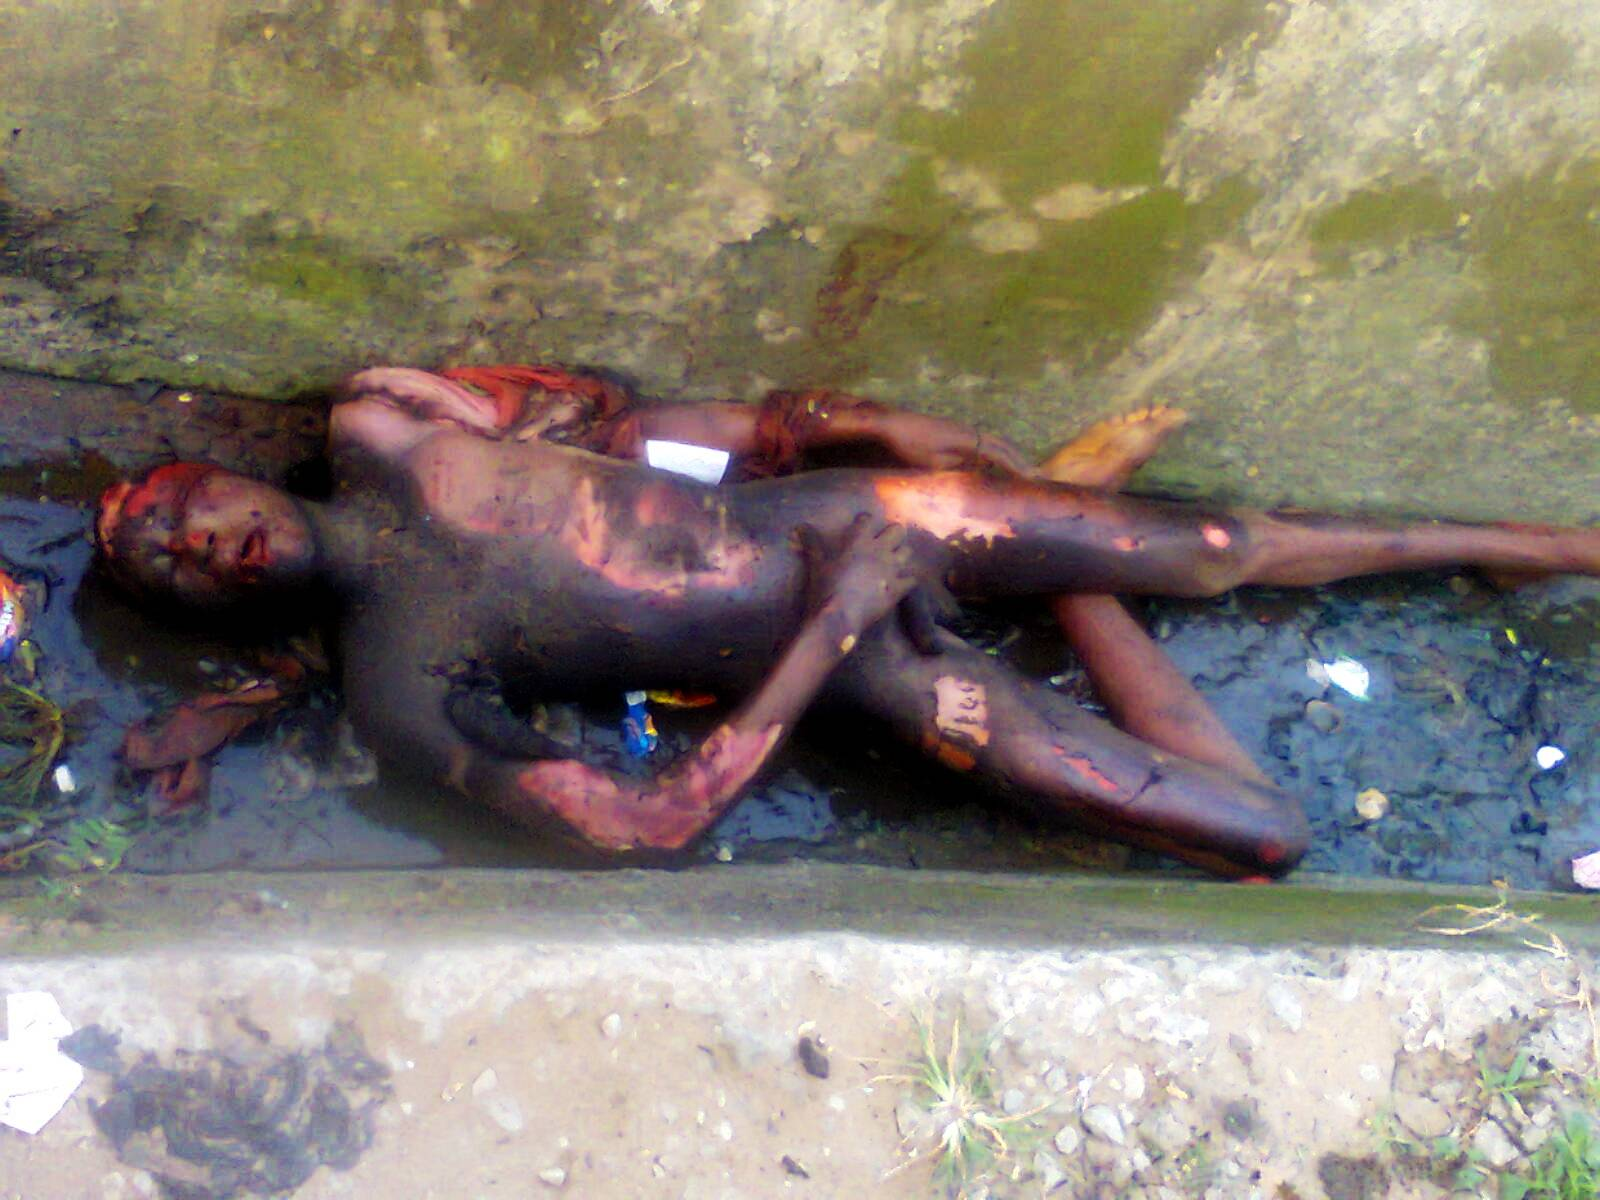 The unidentified suspected robber burnt by residents in Calabar recently